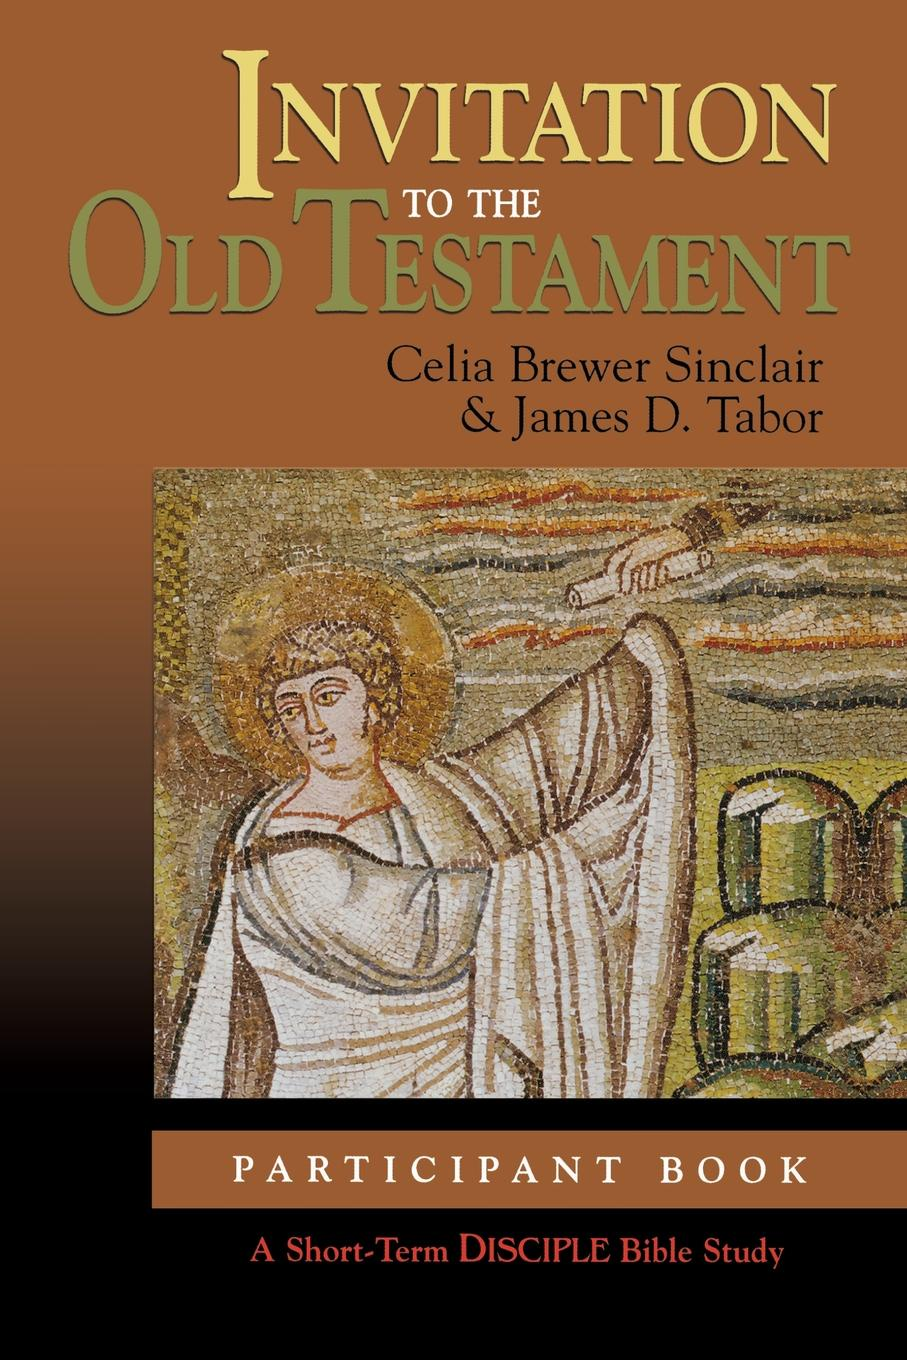 Celia Brewer Sinclair, James D. Tabor DISCIPLE SHORT TERM BIBLE STUDY - OLD TESTAMENT (PARTICIPANT) d w thomas documents from old testament times